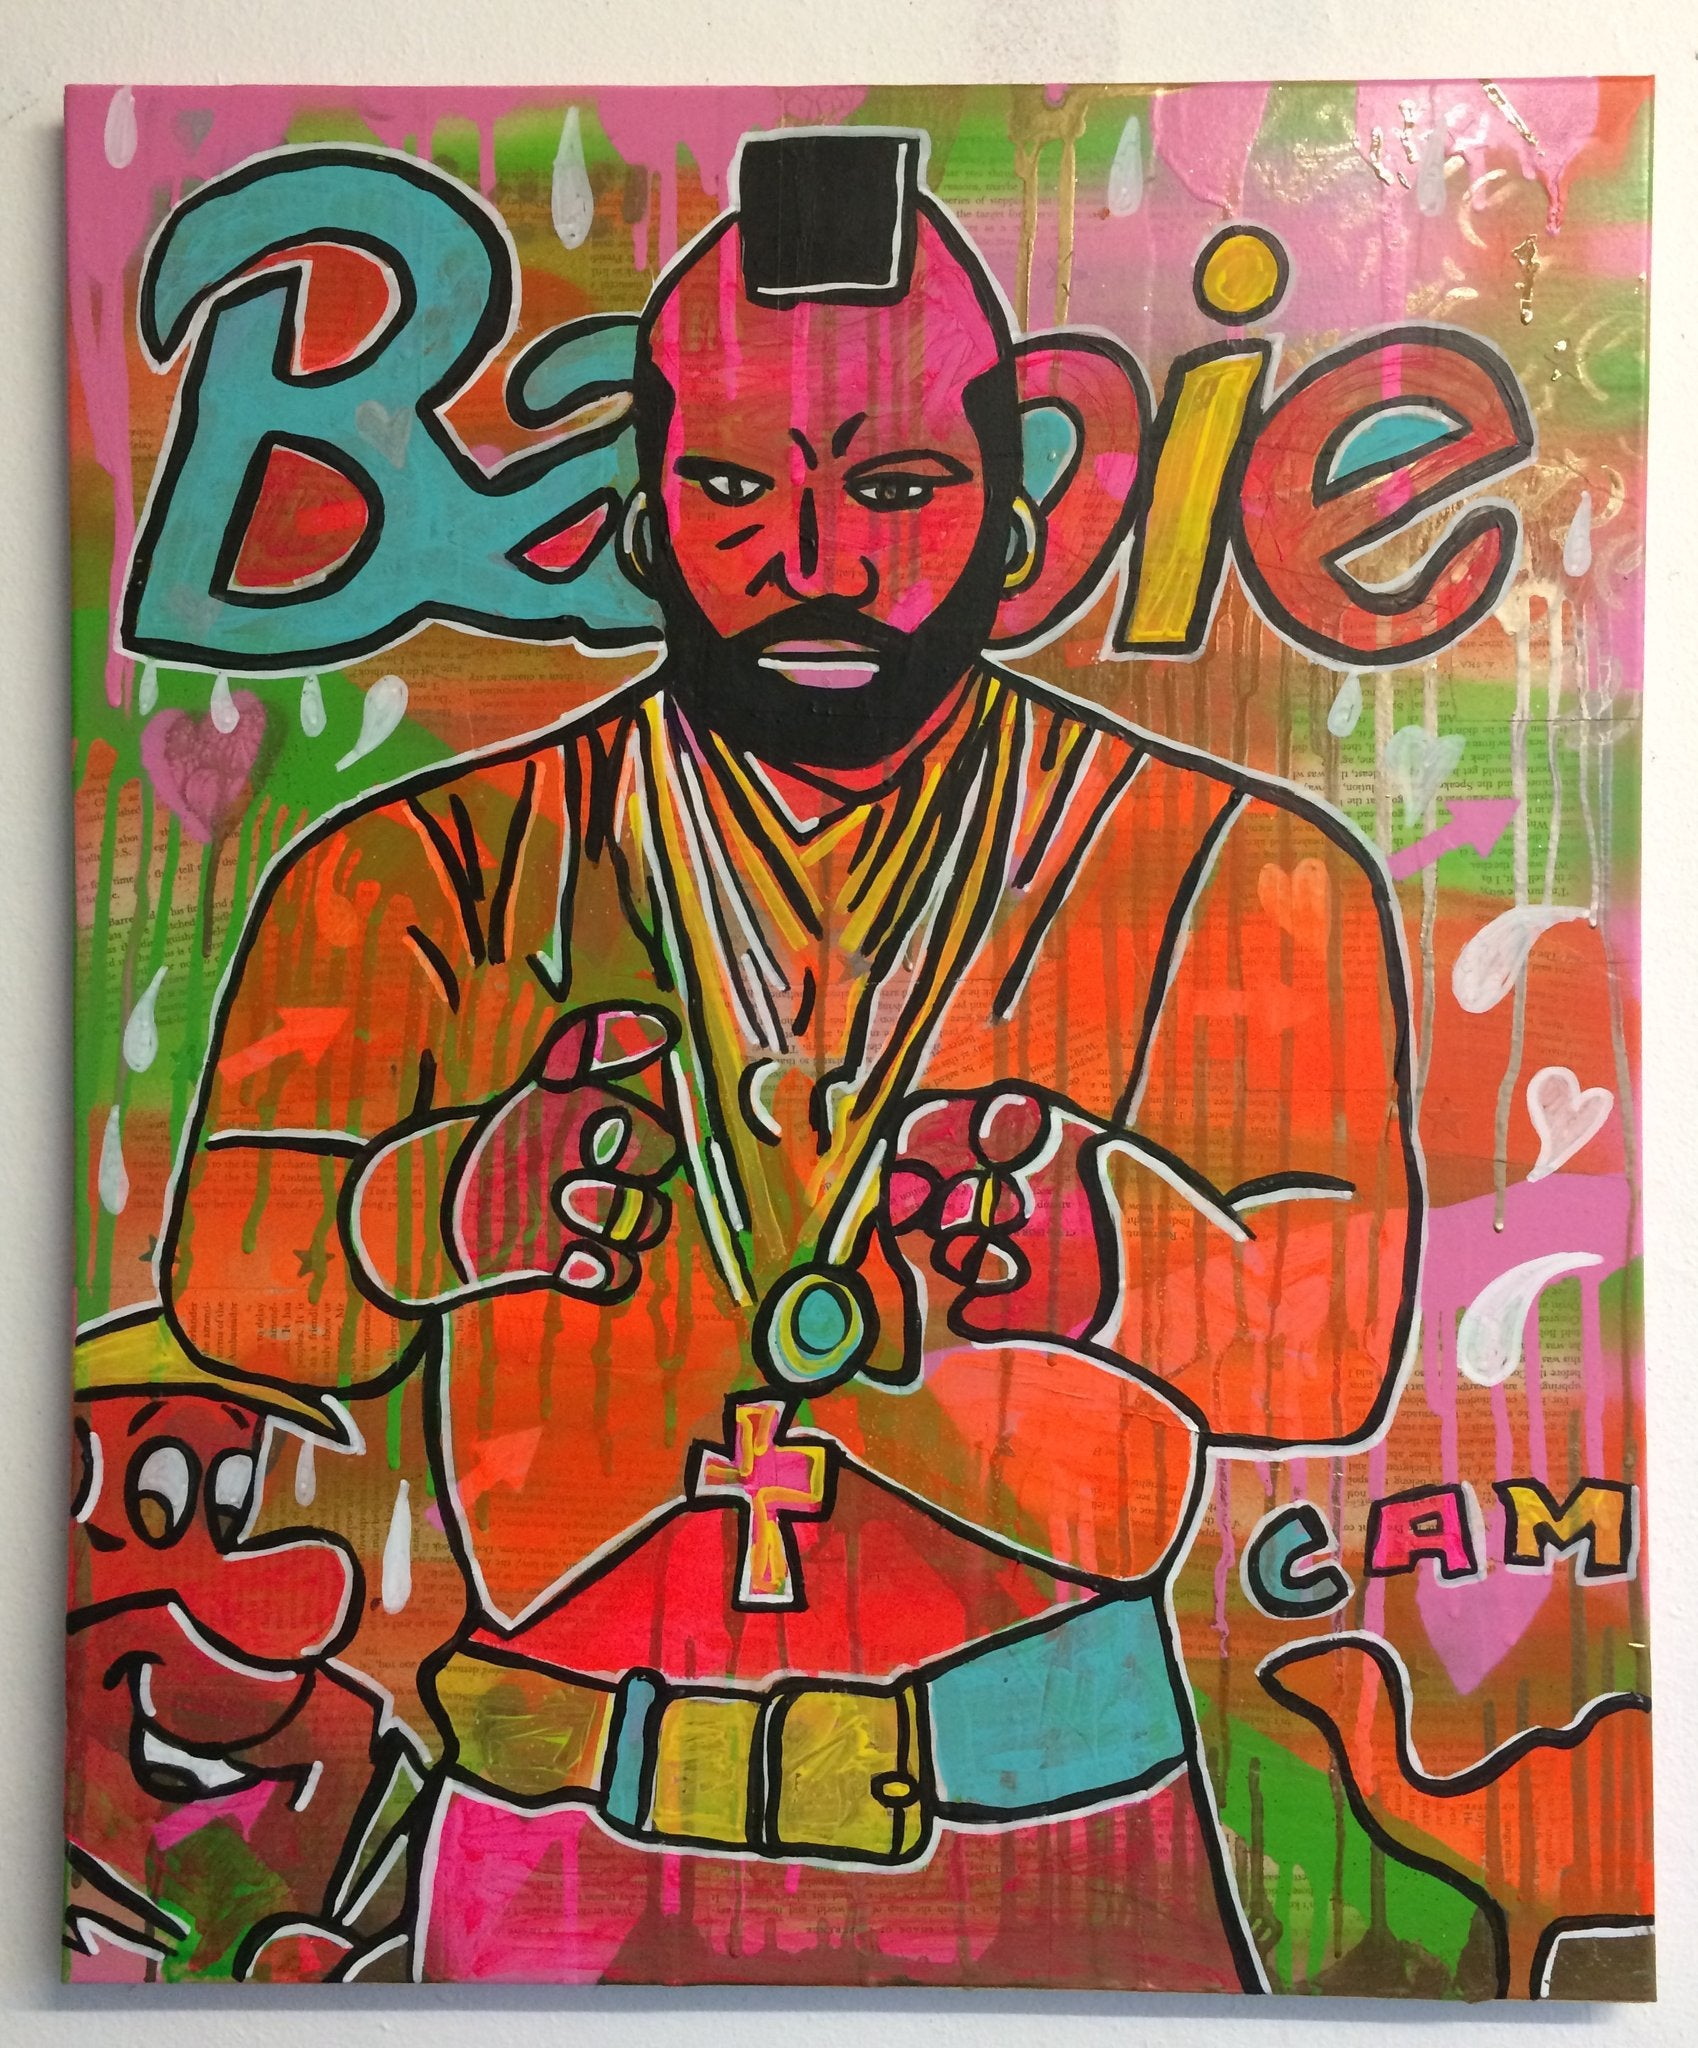 The soft machine by Barrie J Davies 2015, Mixed media on Canvas, 50cm x 60cm, Unframed. Barrie J Davies is an Artist - Psychedelic pop surreal street art inspired Artist based in Brighton England UK - Paintings, Prints & Editions available.